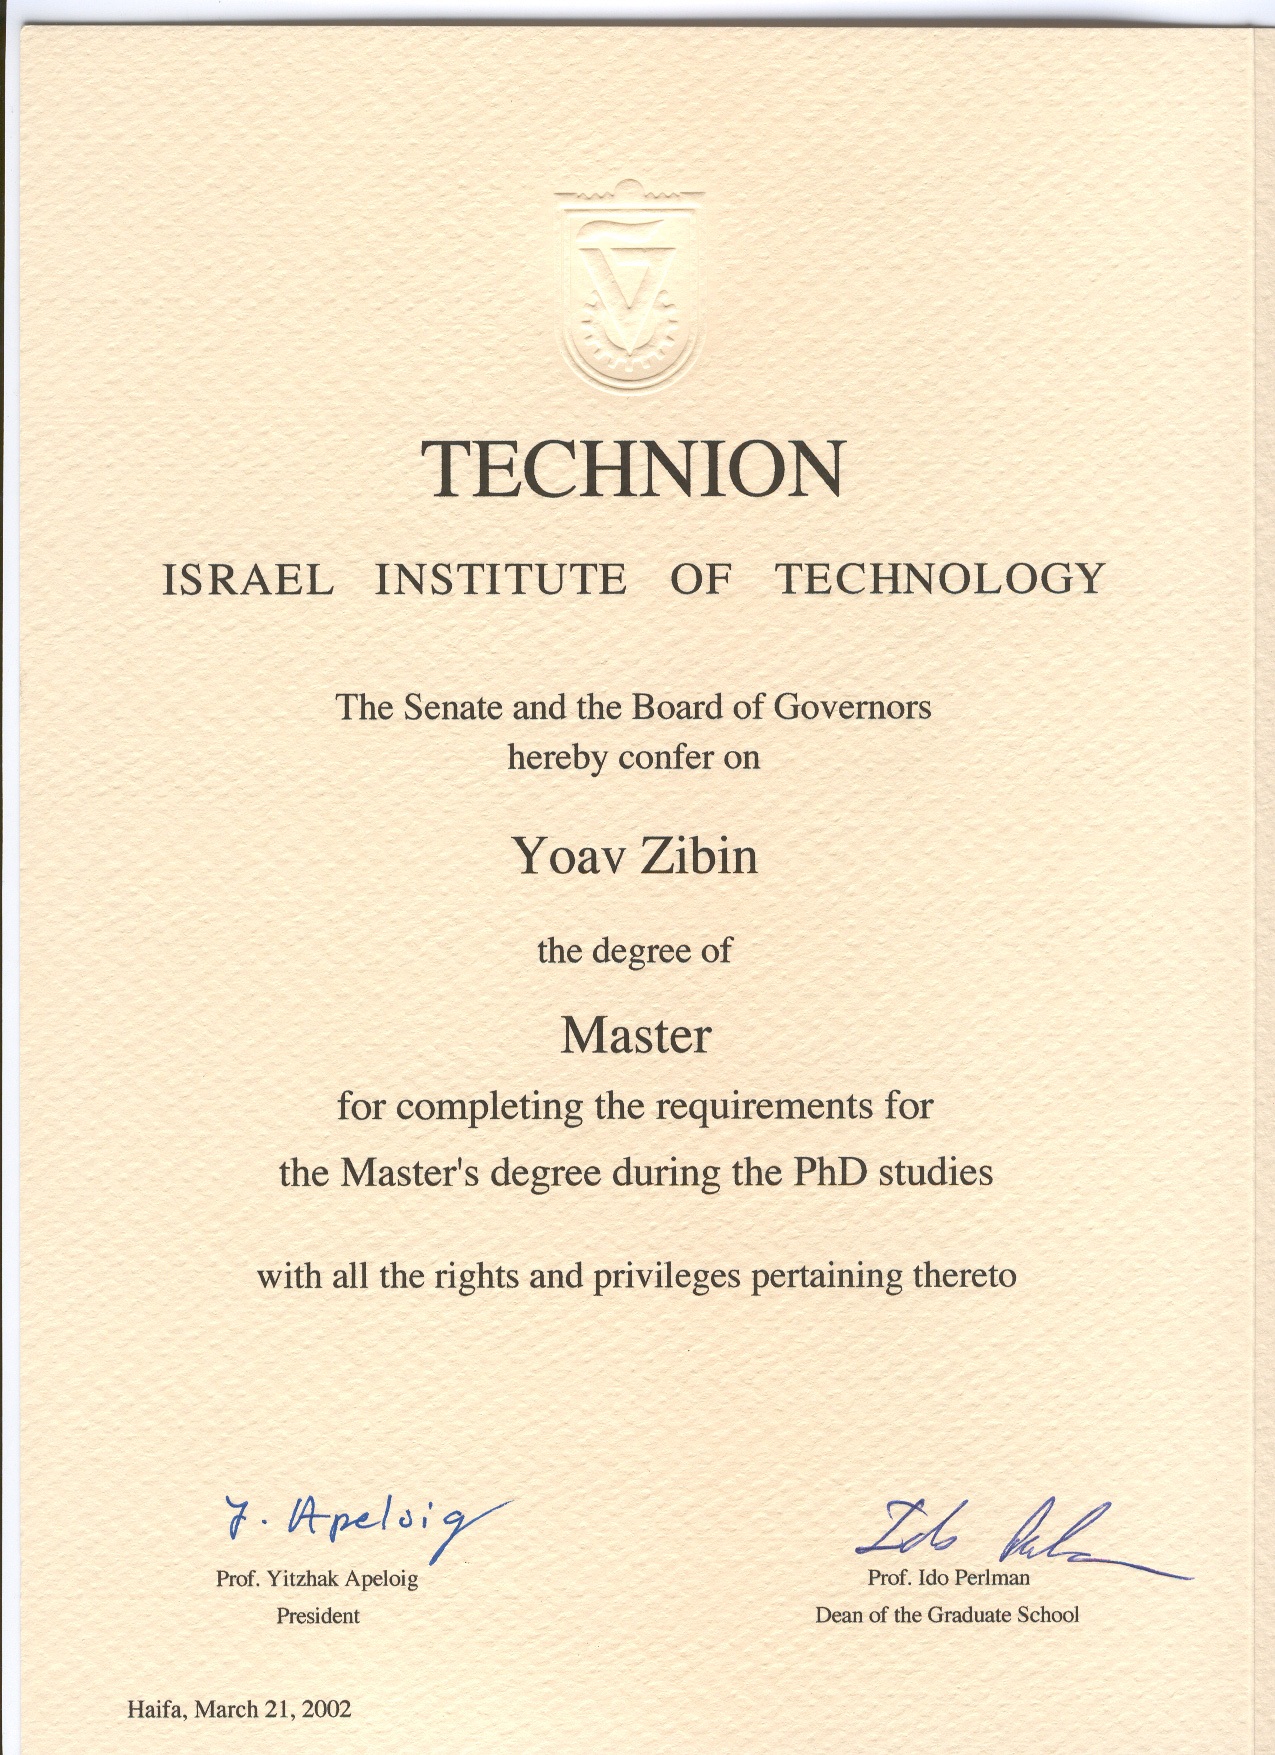 technion msc thesis Technion-iit-thesis - a class for technion iit phd/masters theses technion-iit-thesis / thesistex % your thesis (msc/phd/march etc).